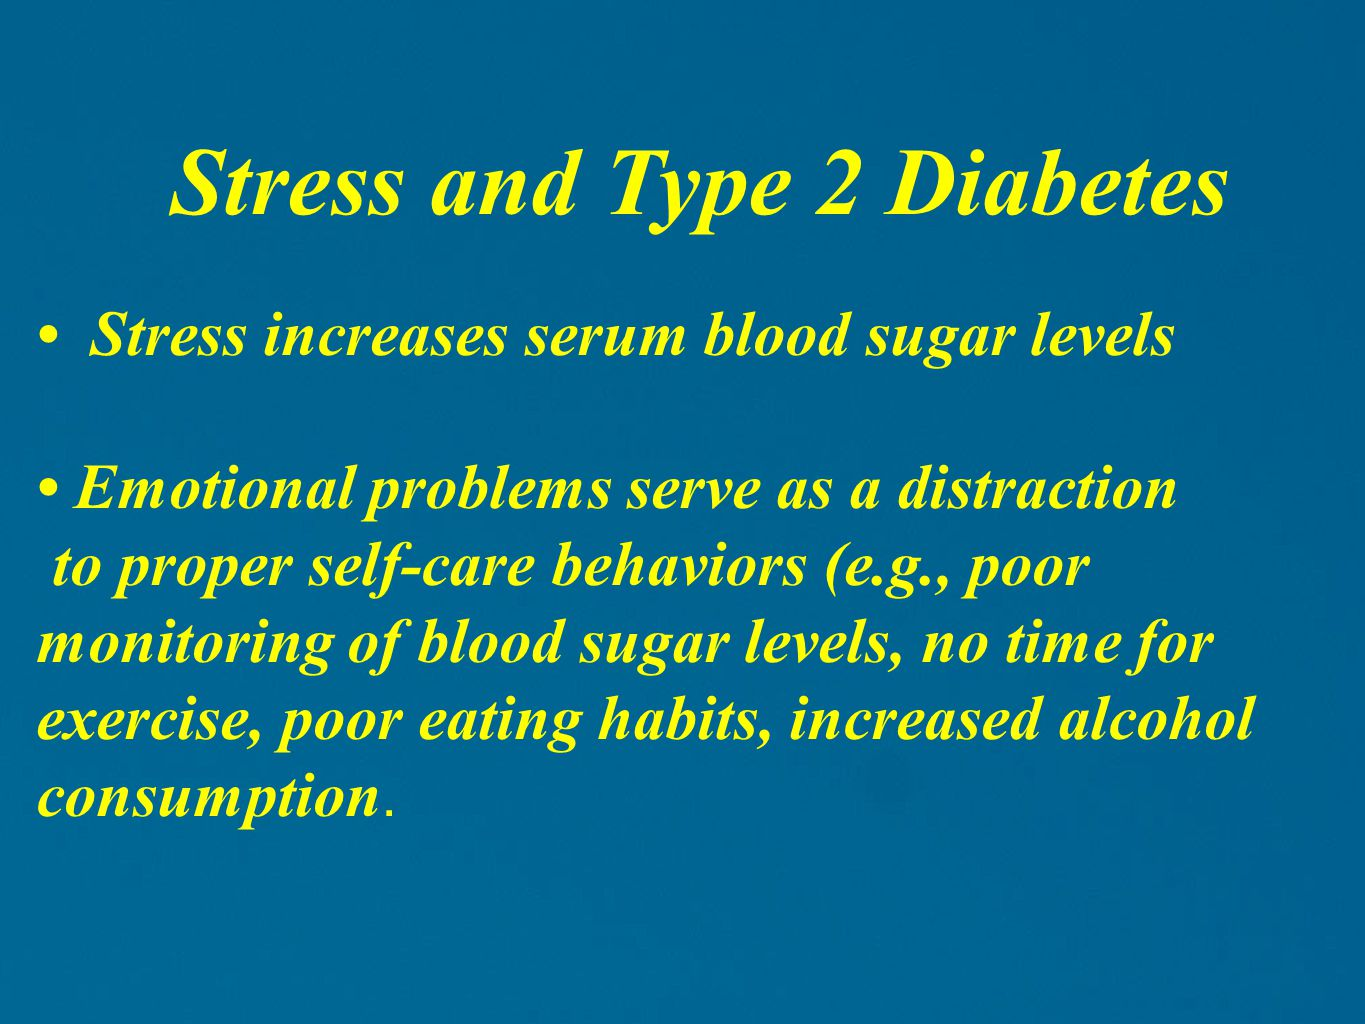 Stress increases serum blood sugar levels Emotional problems serve as a distraction to proper self-care behaviors (e.g., poor monitoring of blood suga